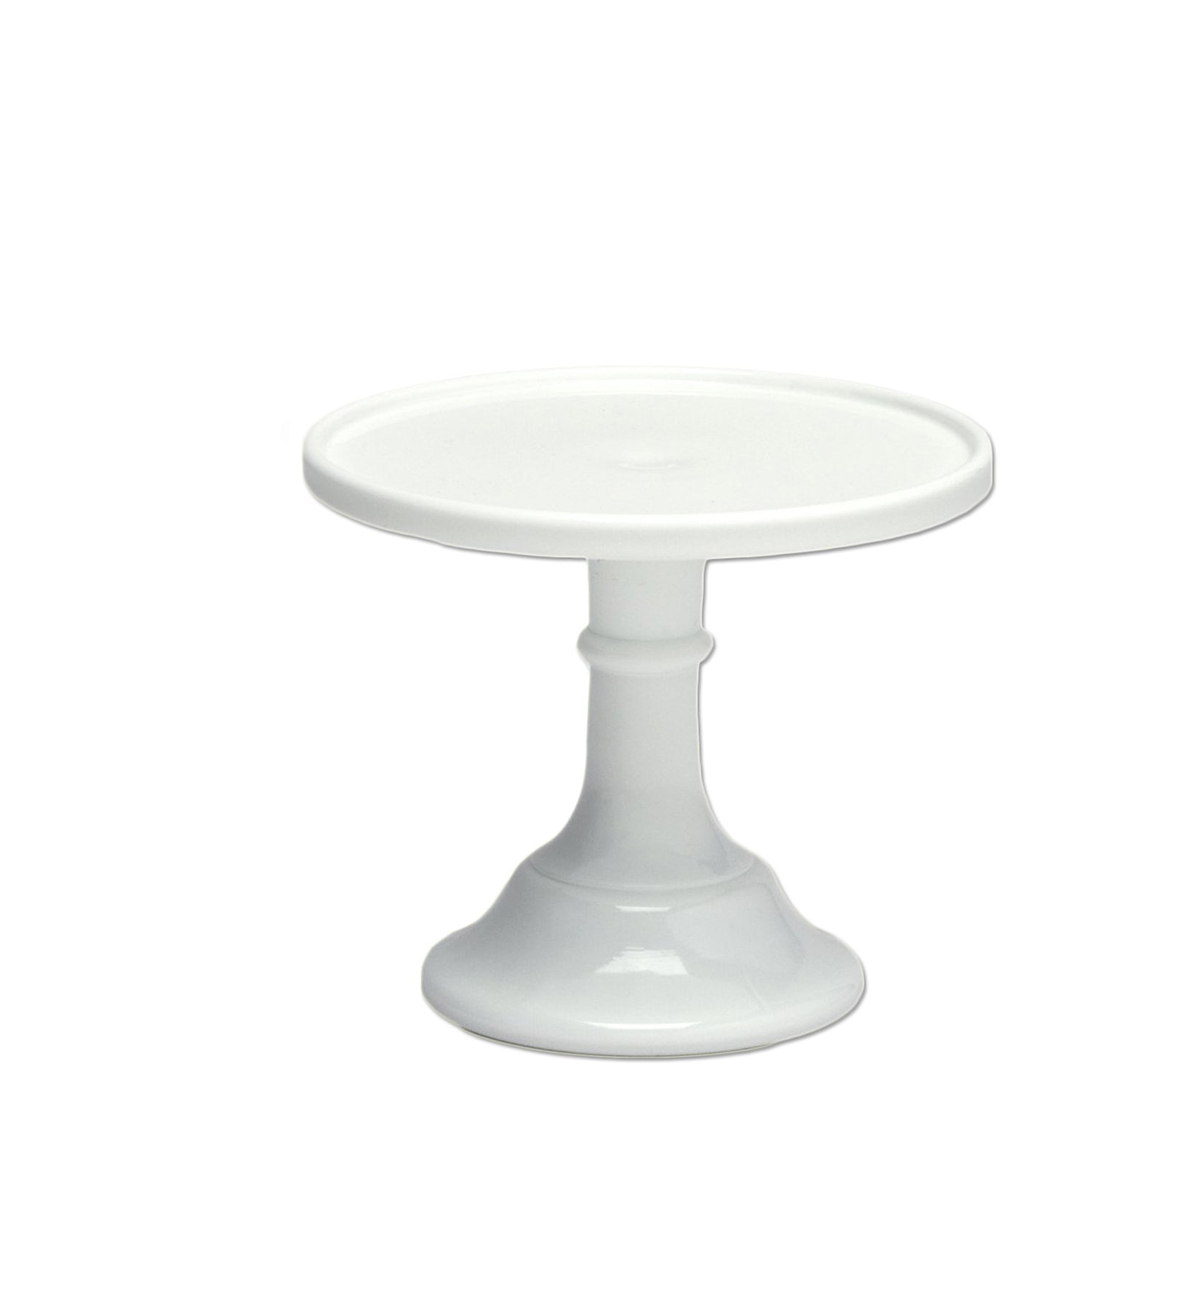 White Milk Glass Cake Stand, Turned Countertop Organizer